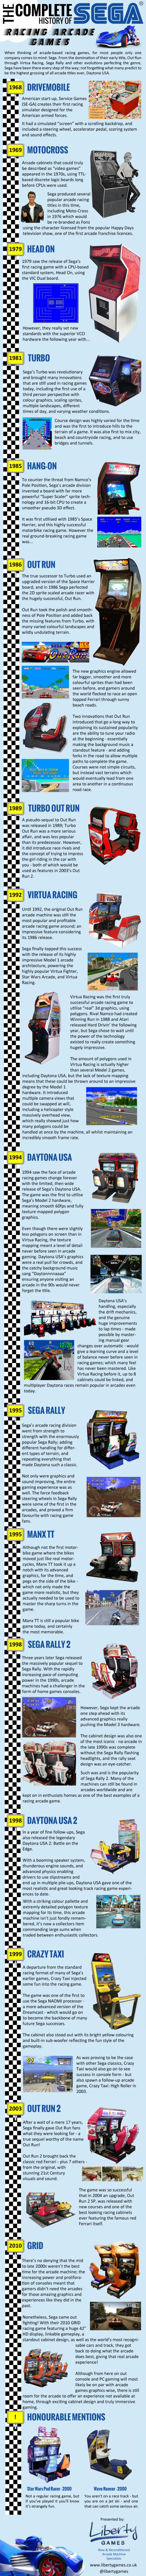 complete-history-of-sega-racing-games